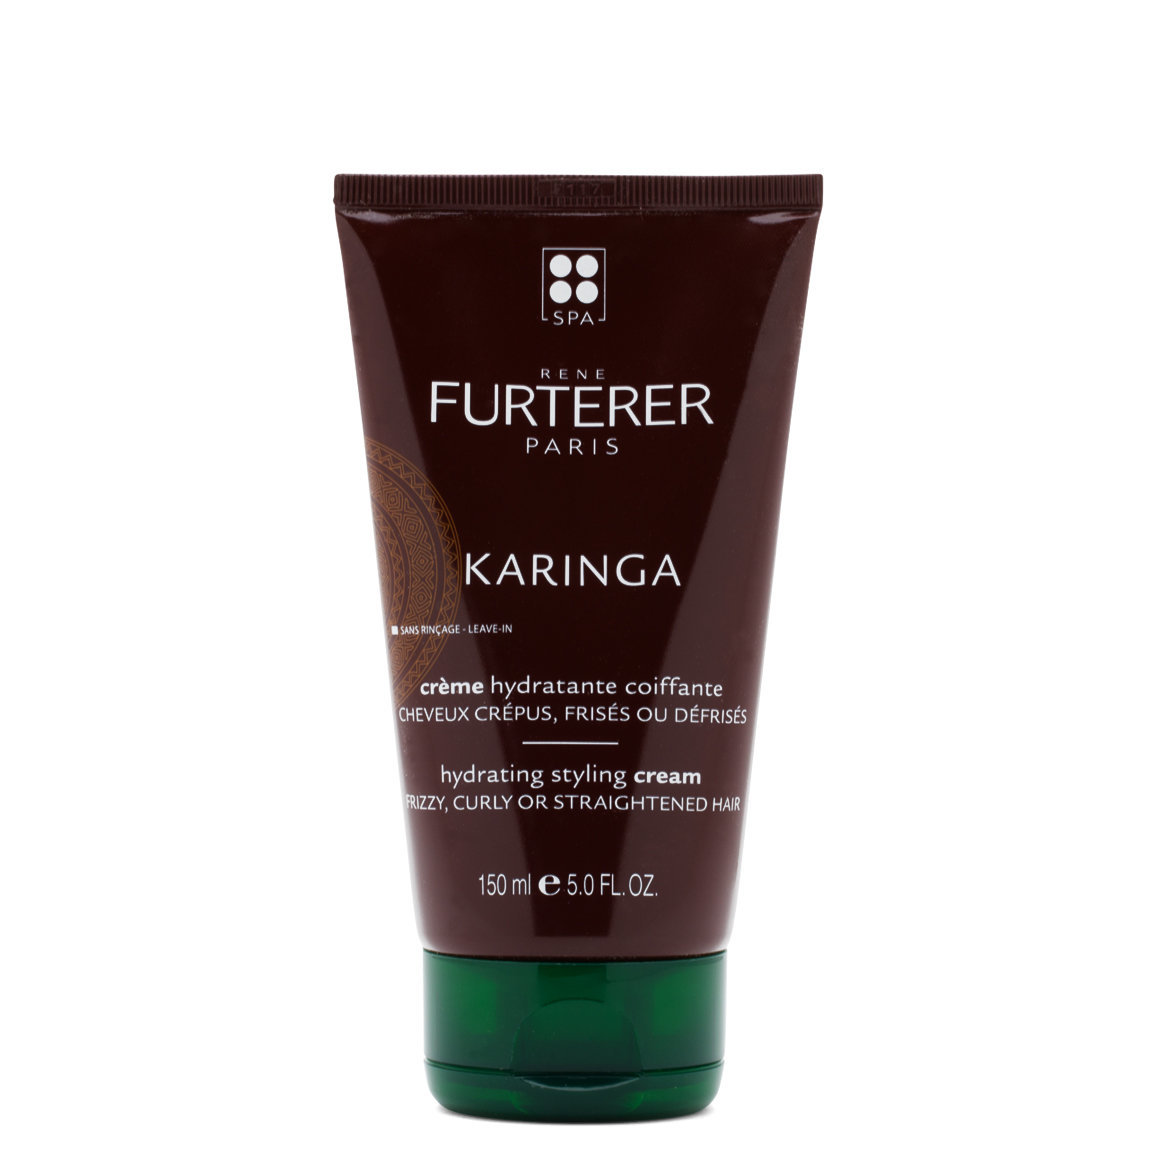 Rene Furterer Karinga Hydrating Styling Cream product swatch.